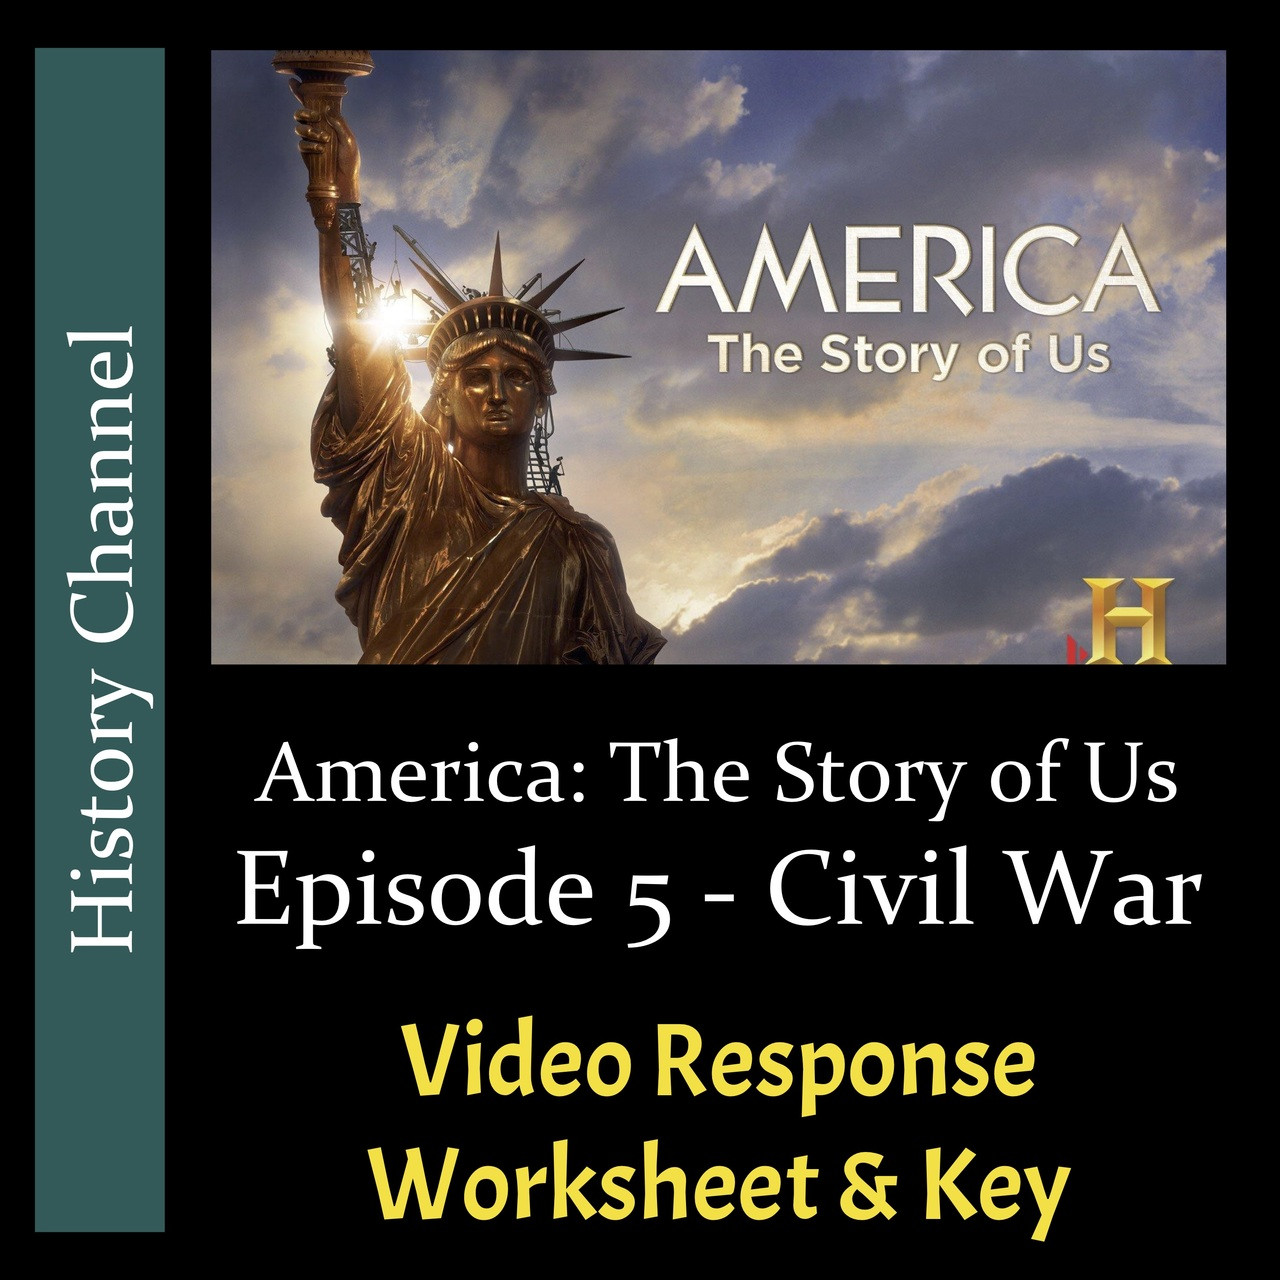 hight resolution of America The Story of Us - Episode 05: Civil War - Video Response Worksheet  \u0026 Key (Editable) - Amped Up Learning